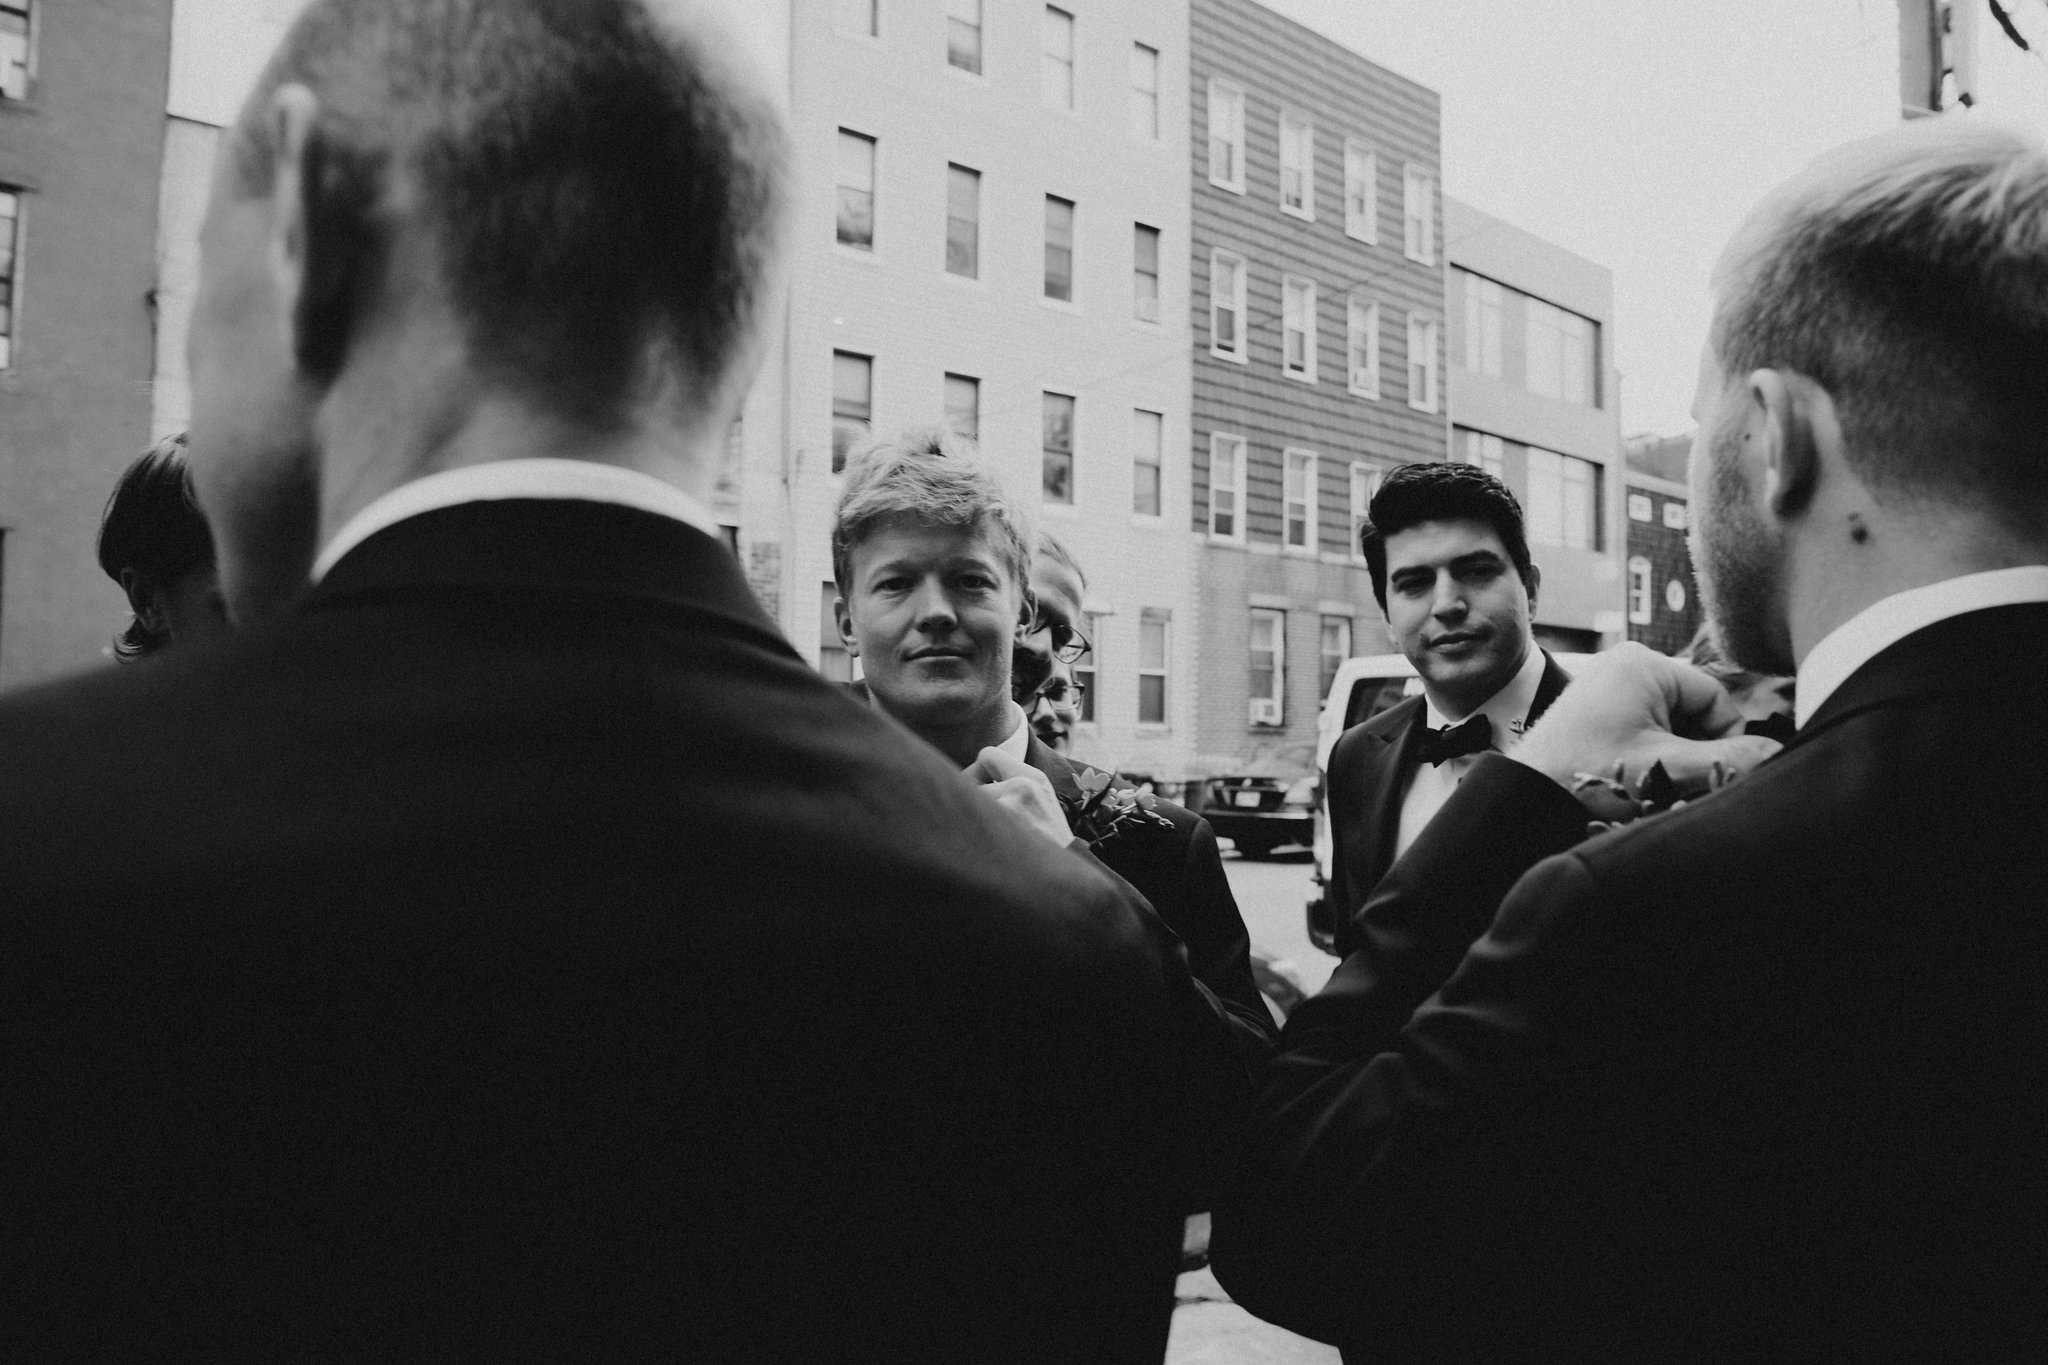 Brooklyn_Winery_Wedding_Chellise_Michael_Photography0543.JPG